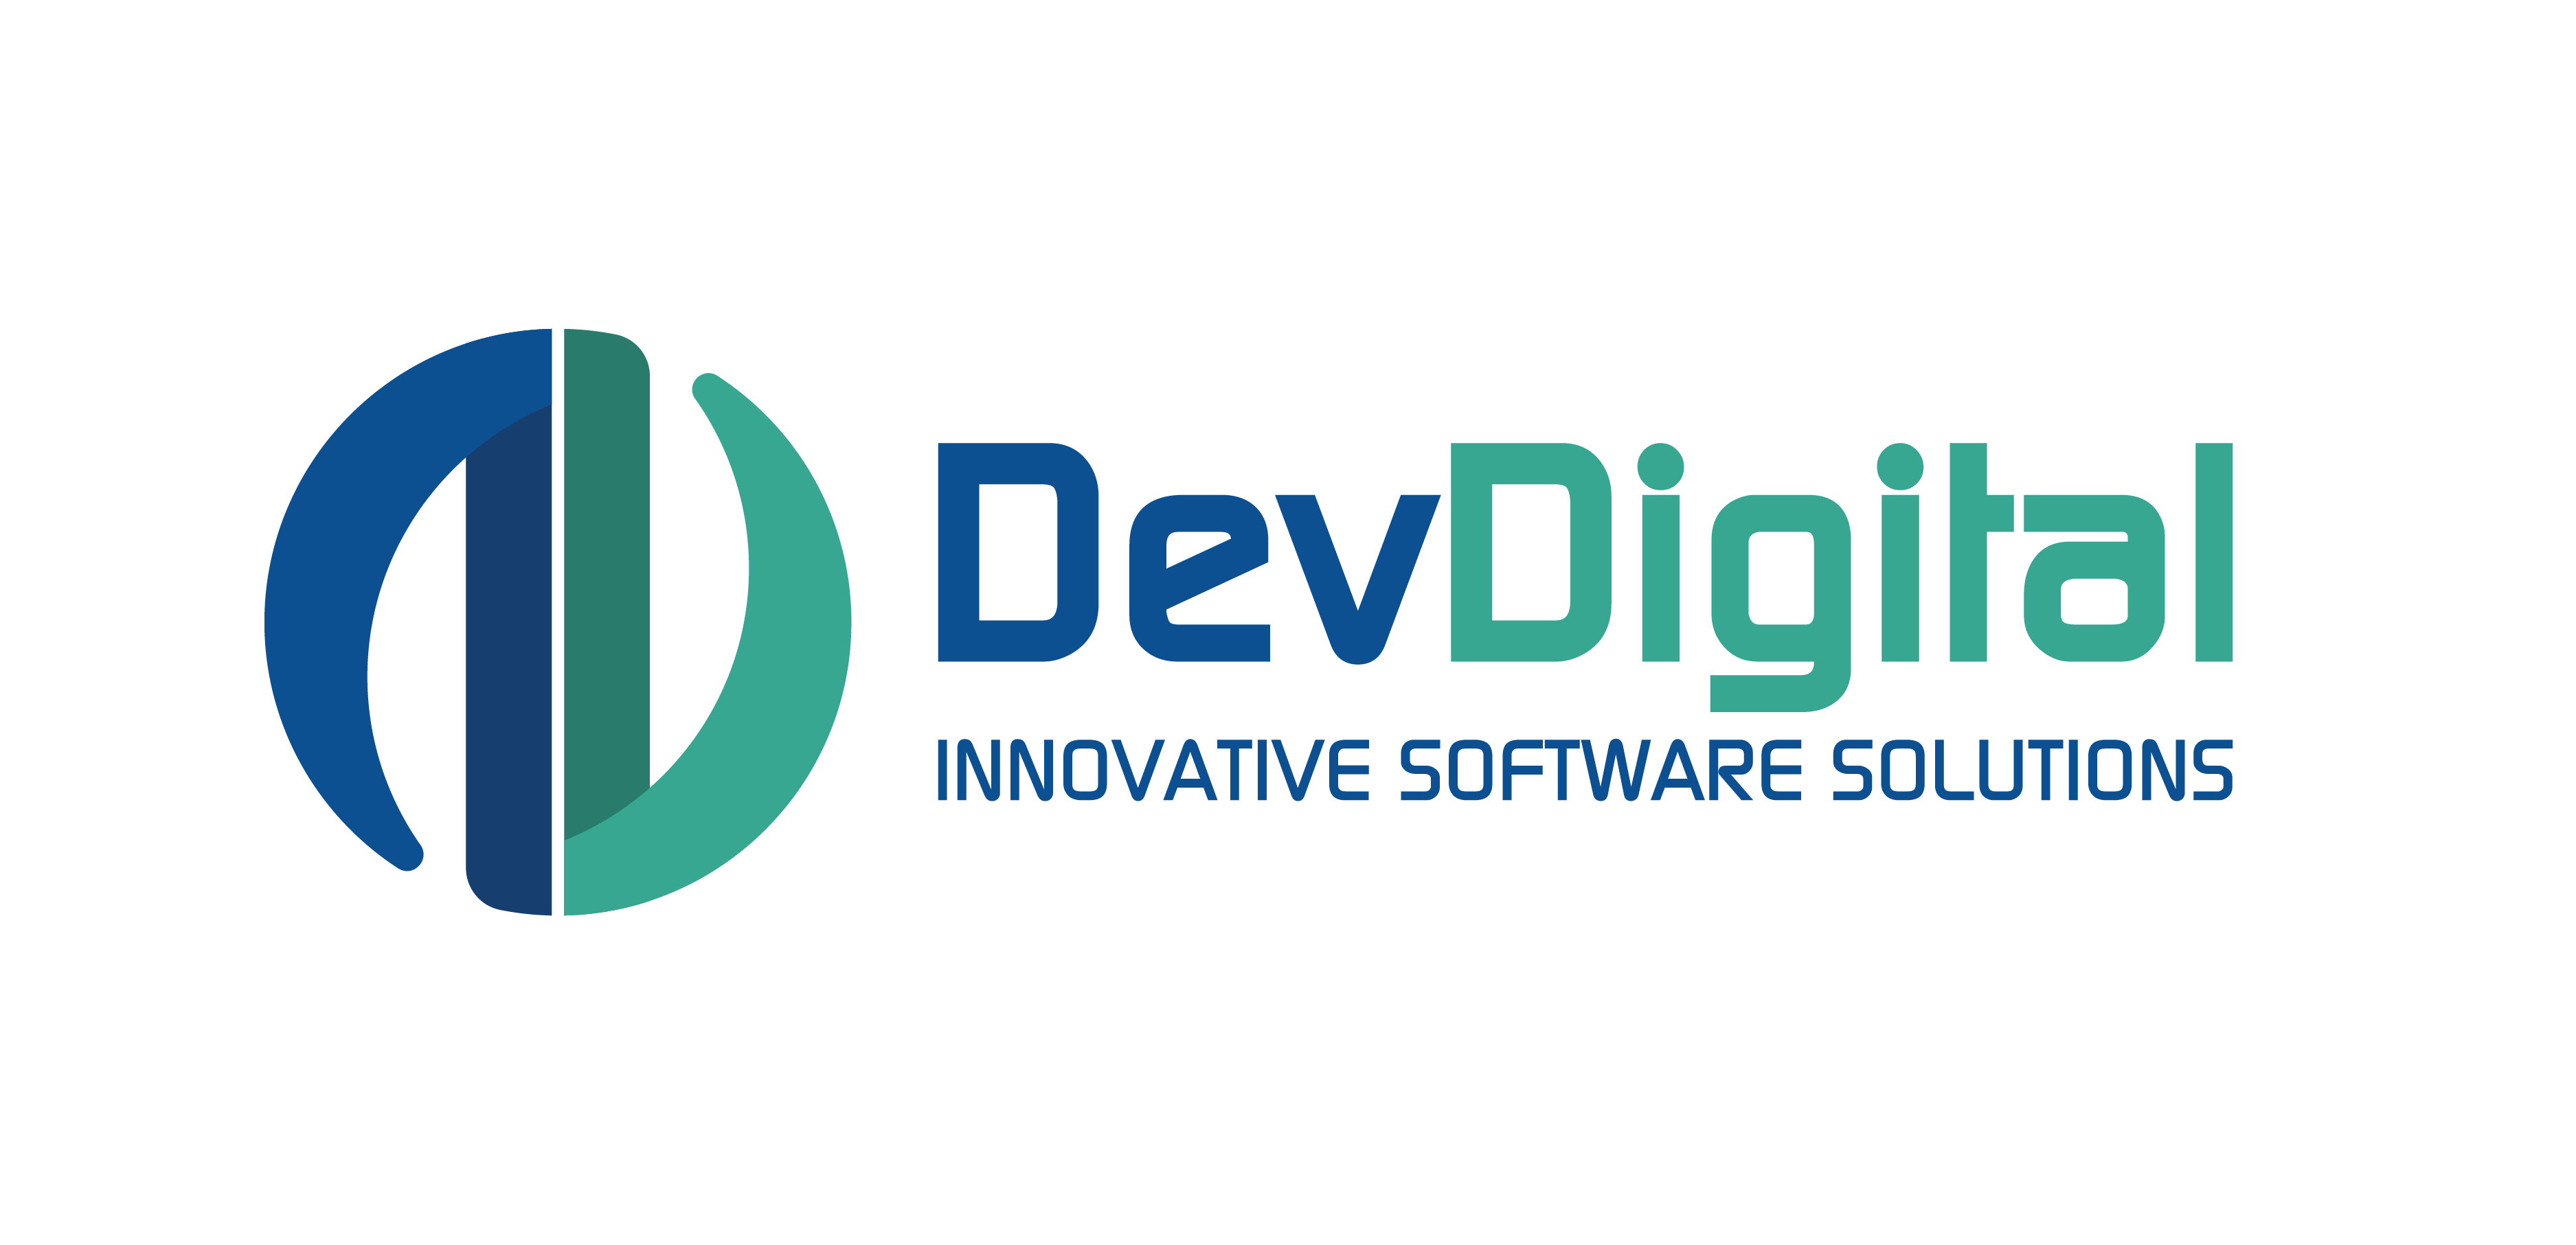 DevDigital, LLC